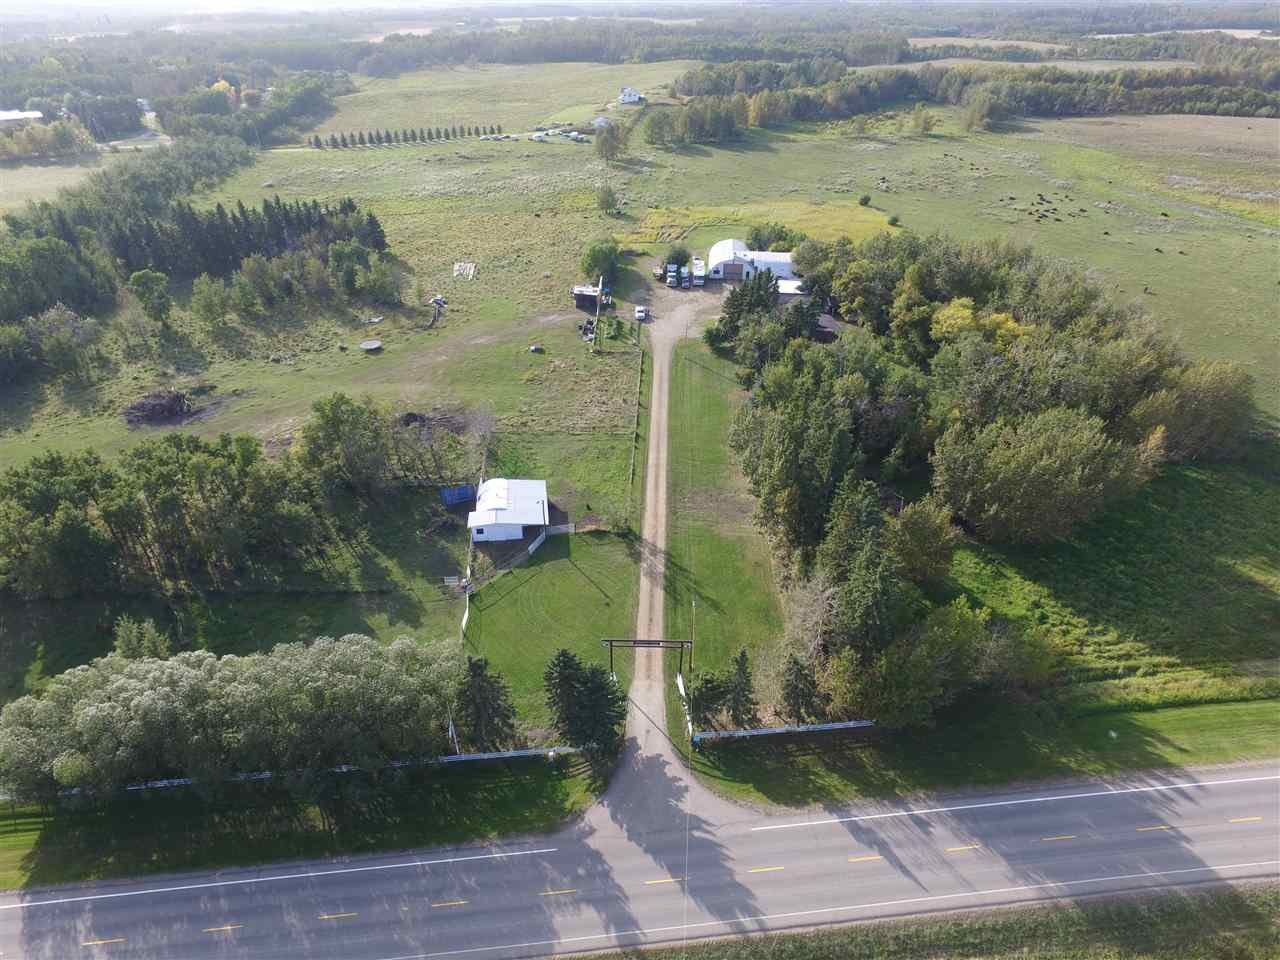 Photo 46: Photos: 472050A Hwy 814: Rural Wetaskiwin County House for sale : MLS®# E4213442